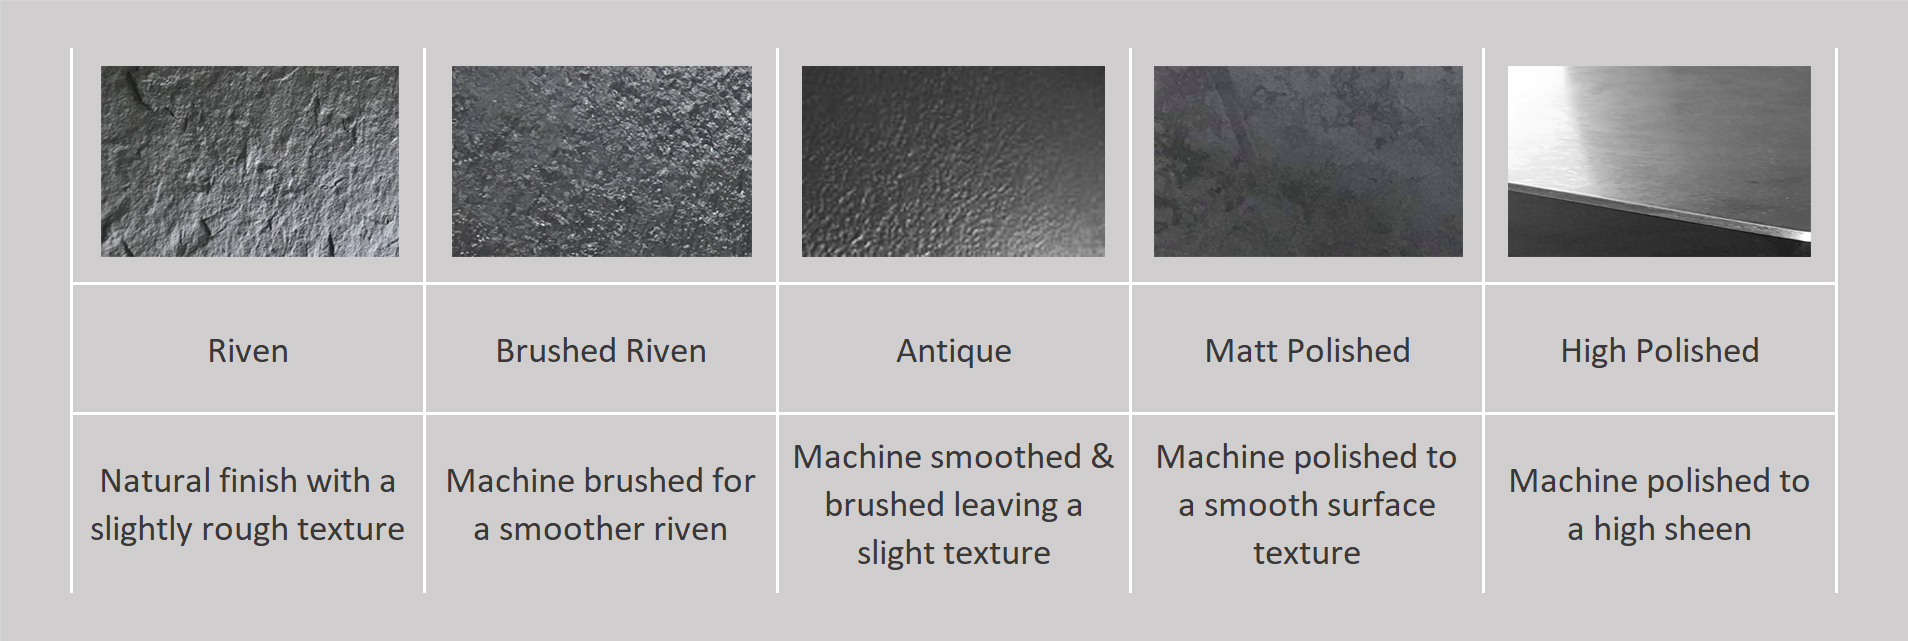 Norse Stone Caithness Flagstone Finishes Guide